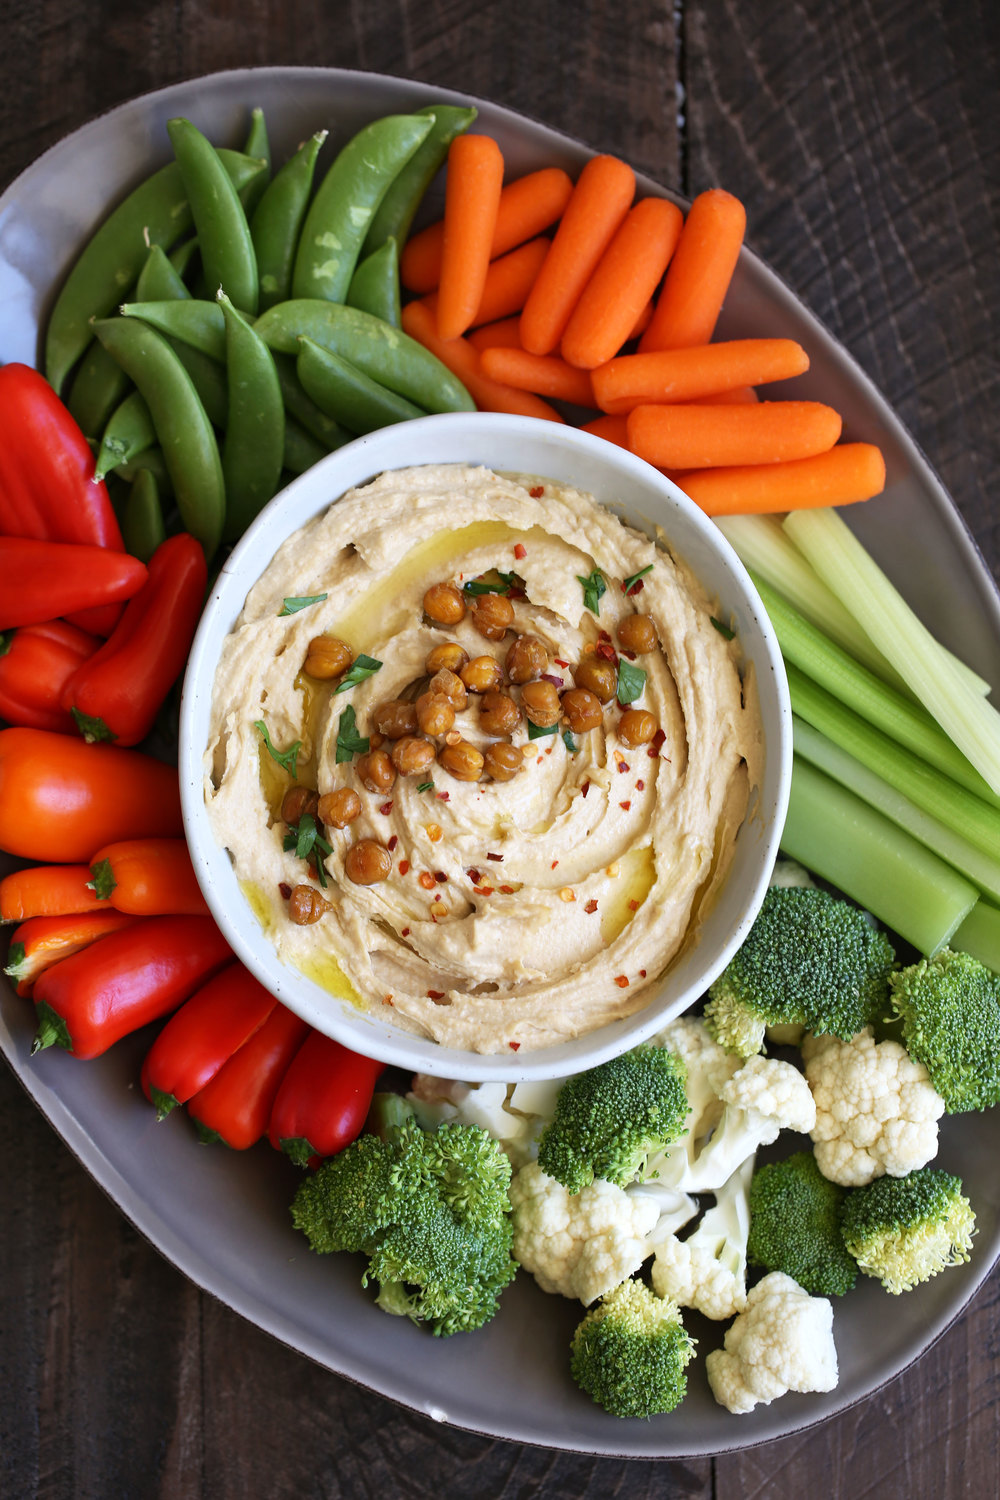 spicy hummus with roasted chickpeas and veggies